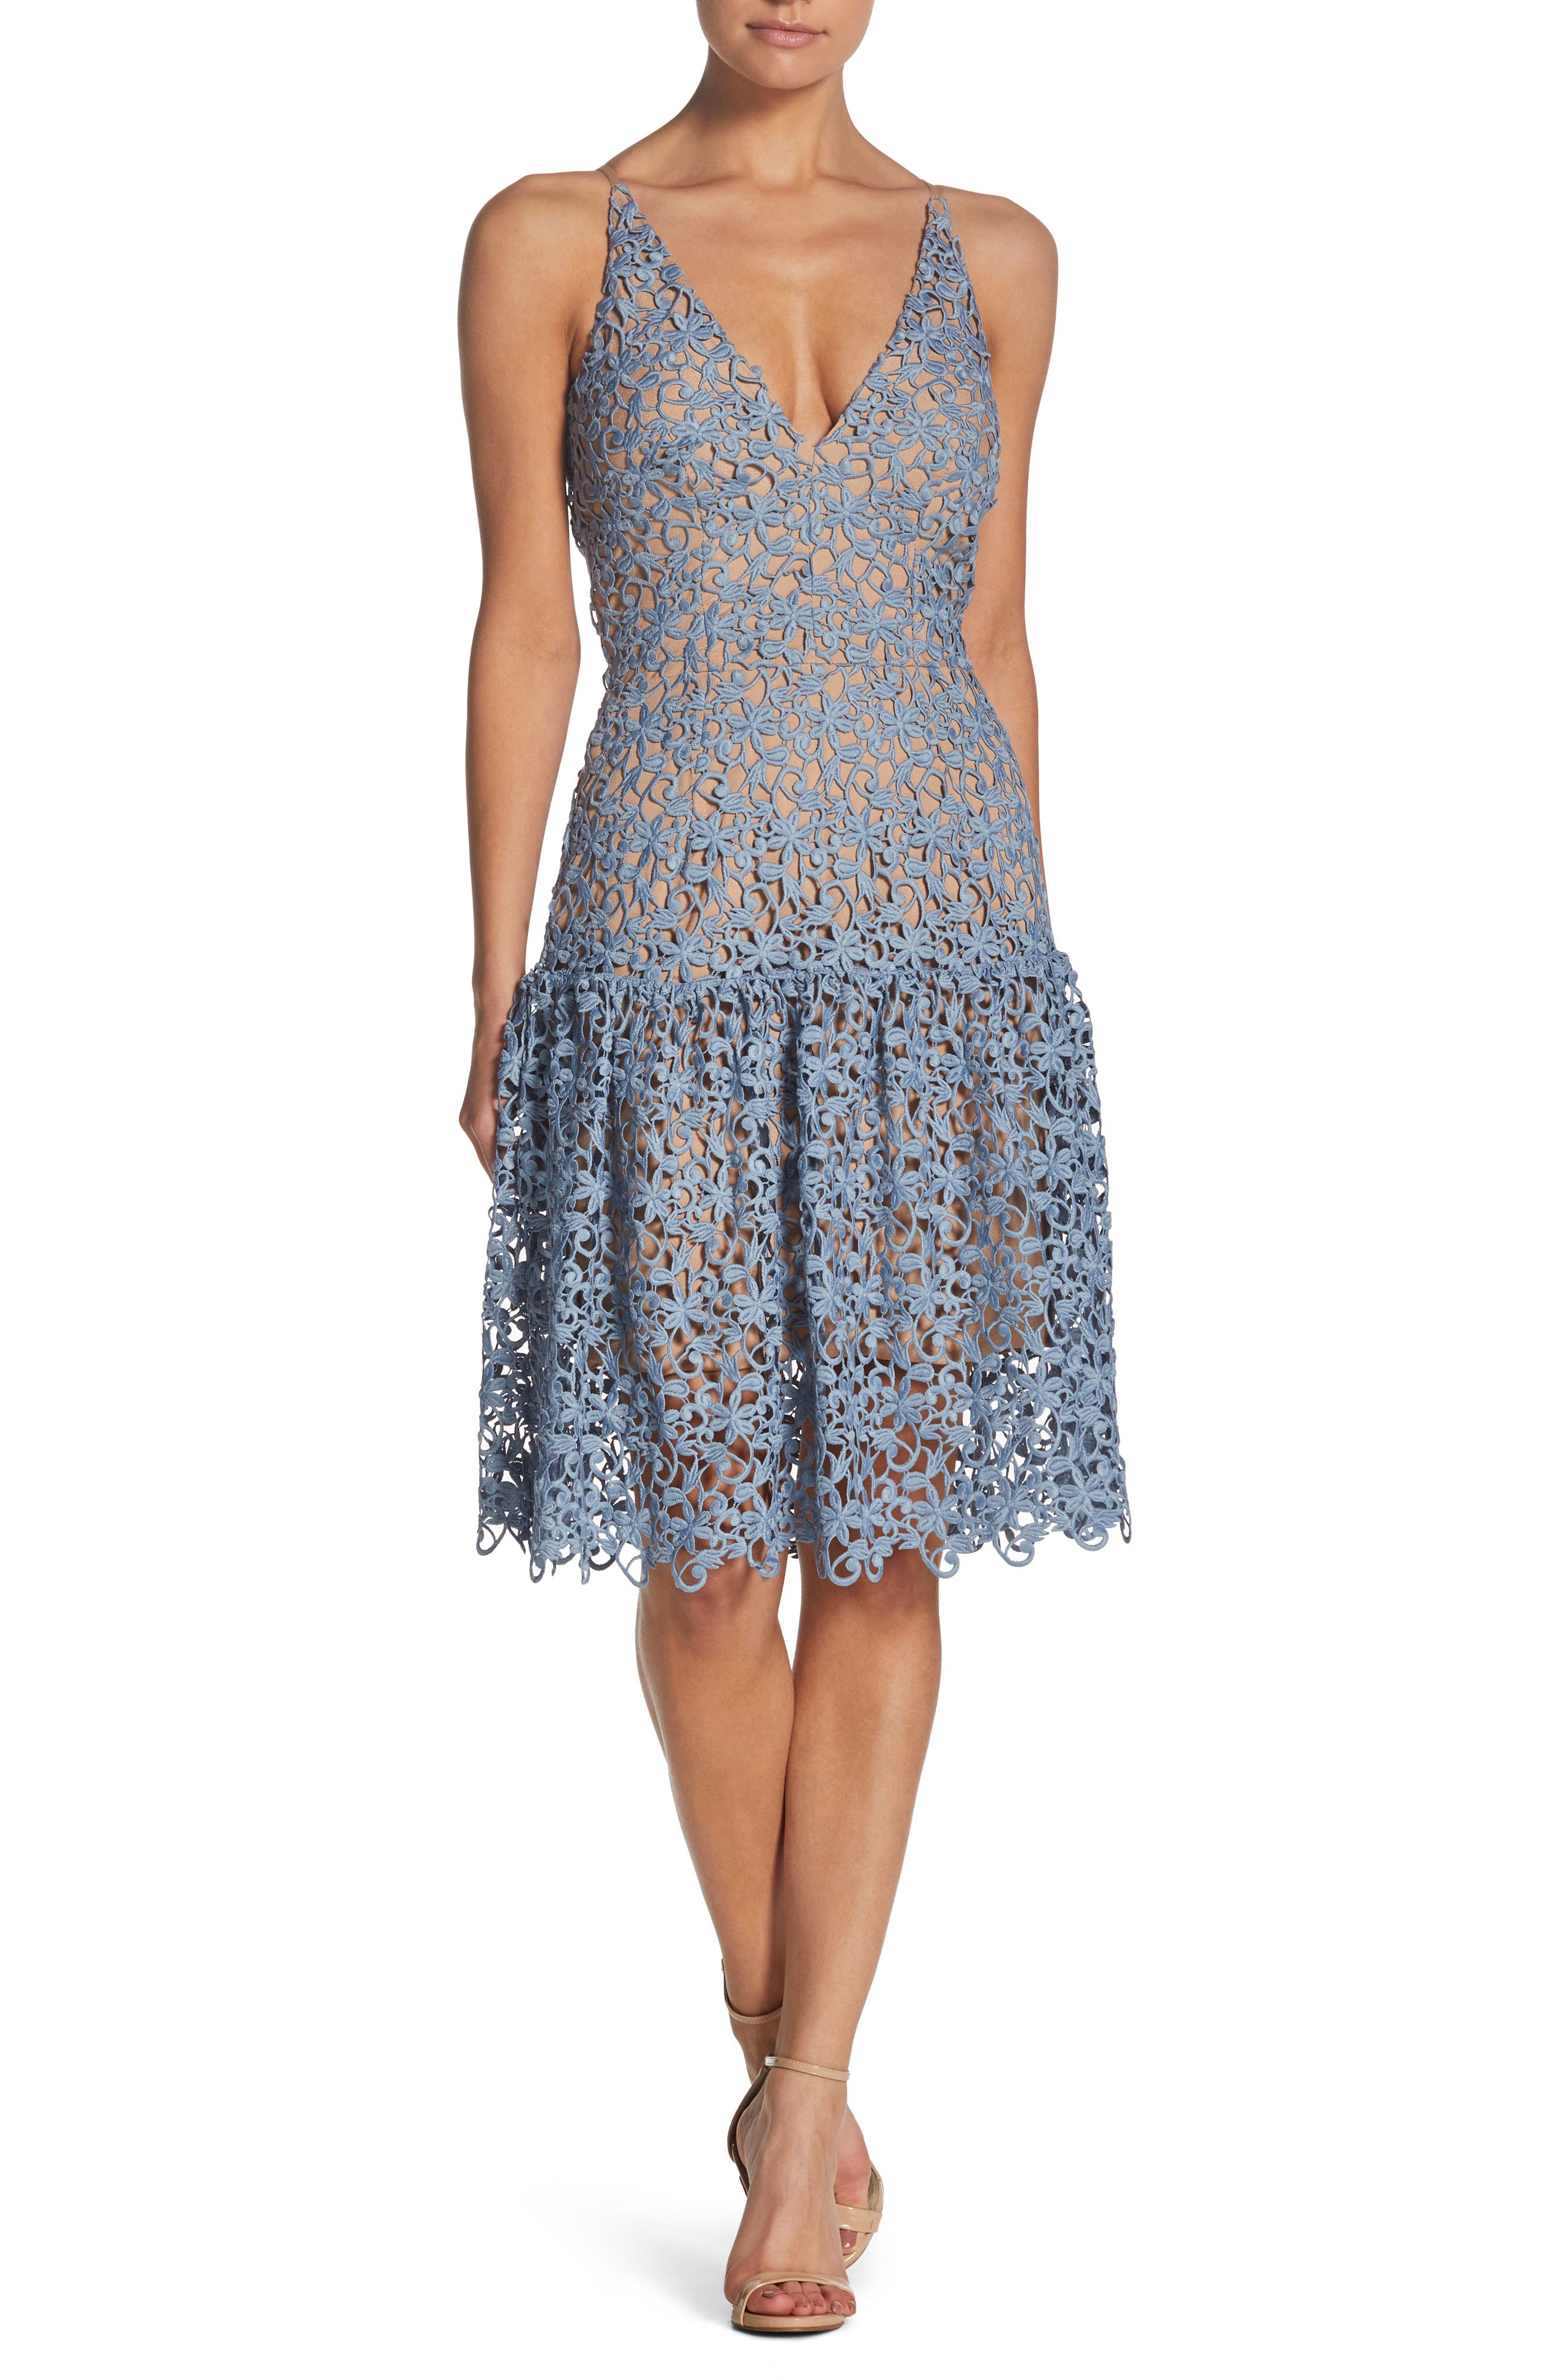 Lily Crochet Fit & Flare Dress,                         Main,                         color, Mineral Blue/ Nude